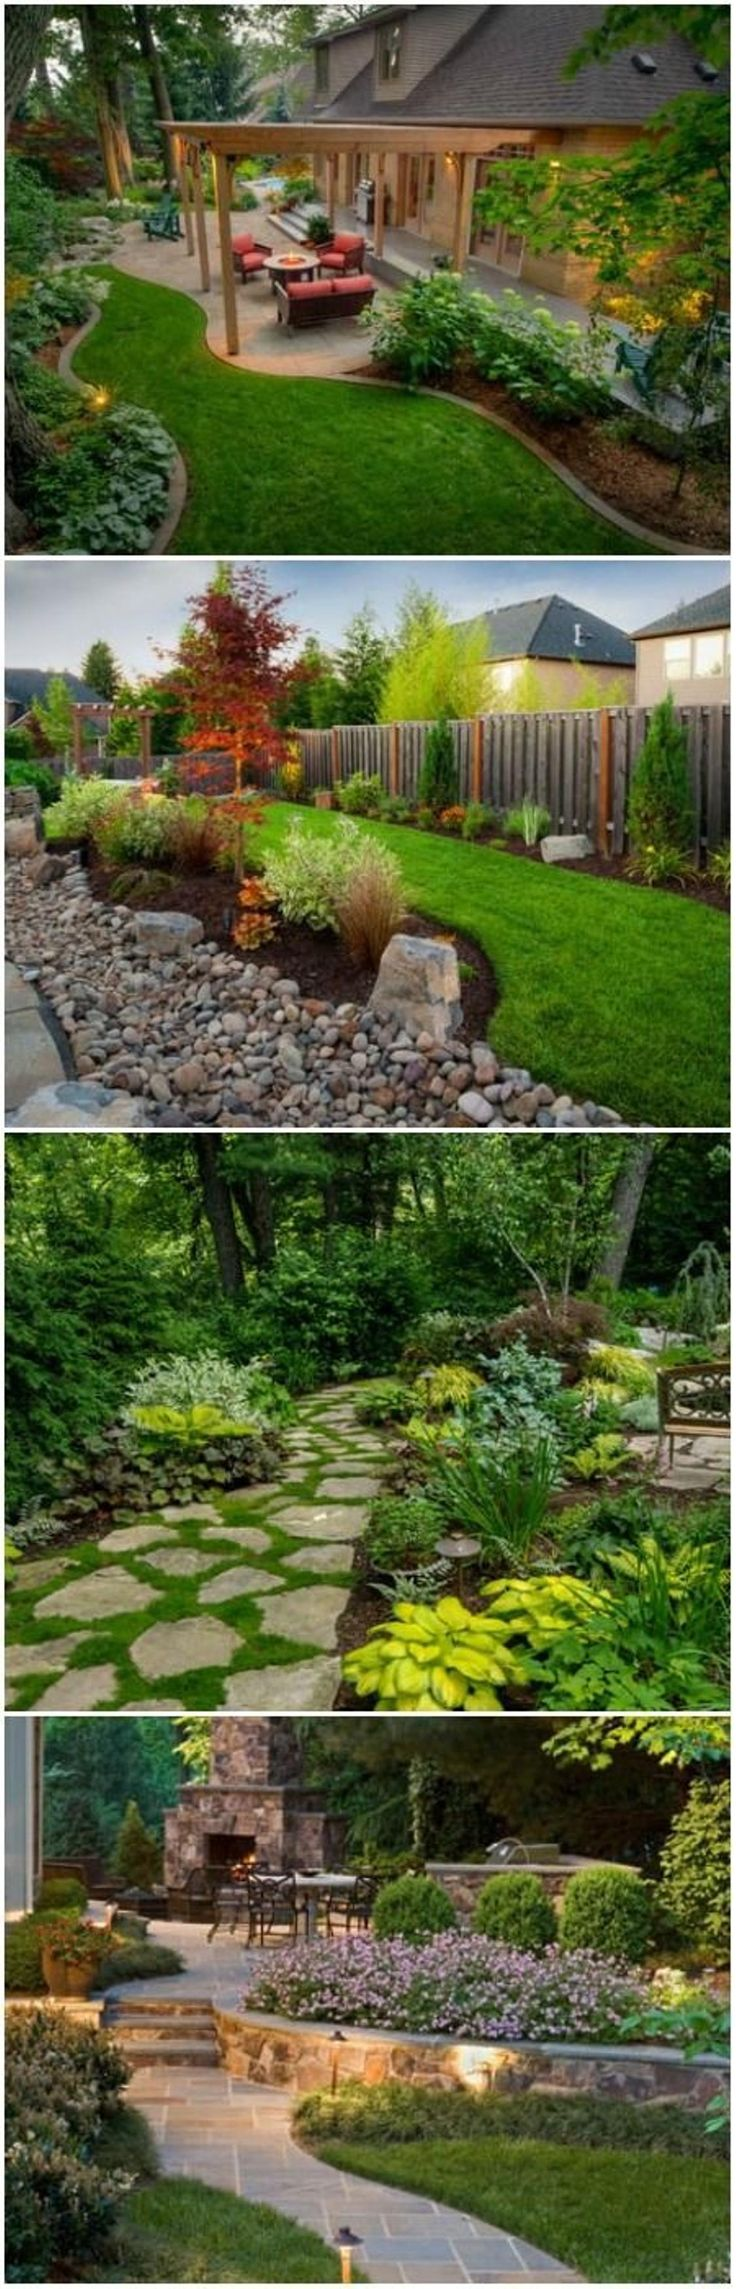 Spring is coming…error, spring is there and it's time to think to your garden and maybe rearranging it in order to have a beautifull garden as a nice place to stay this summer. Below, you will find a selection of 14 nice traditional landscape garden design ideas that mix flowers, grass, path, decorations, stones…So let […]